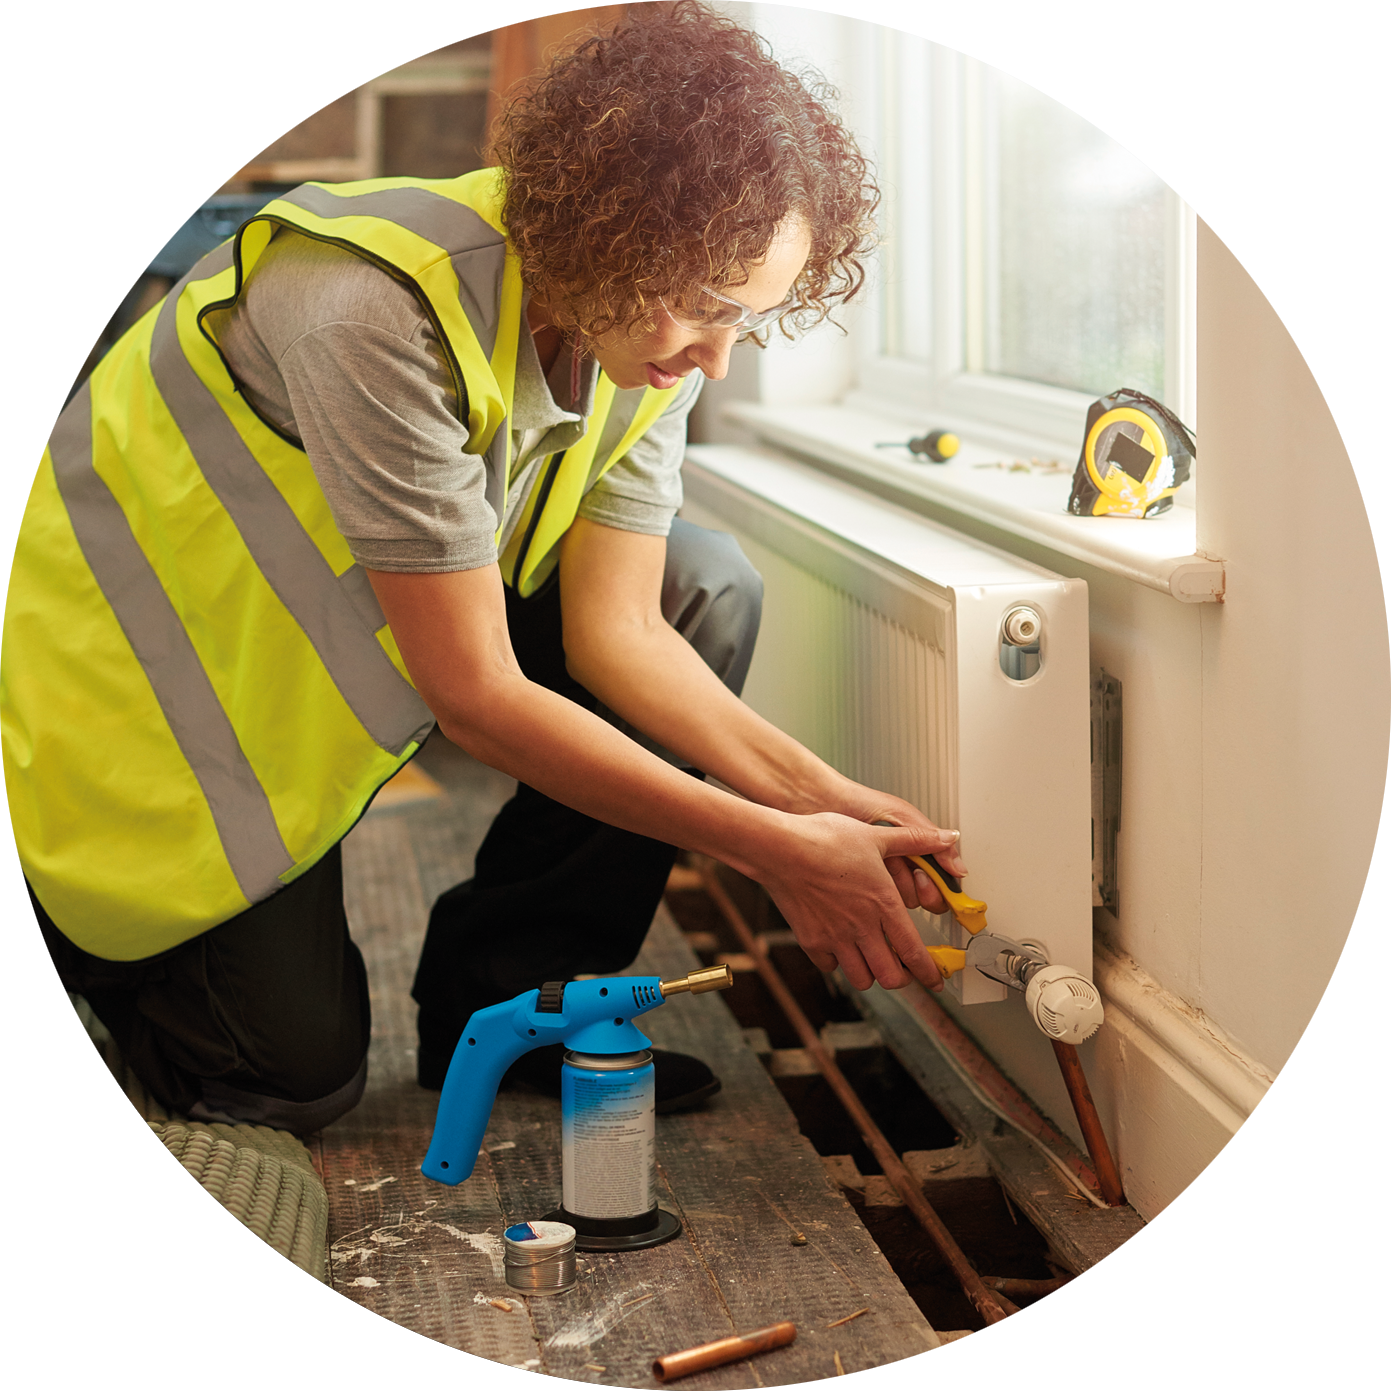 Carrying out a repair to a central heating system